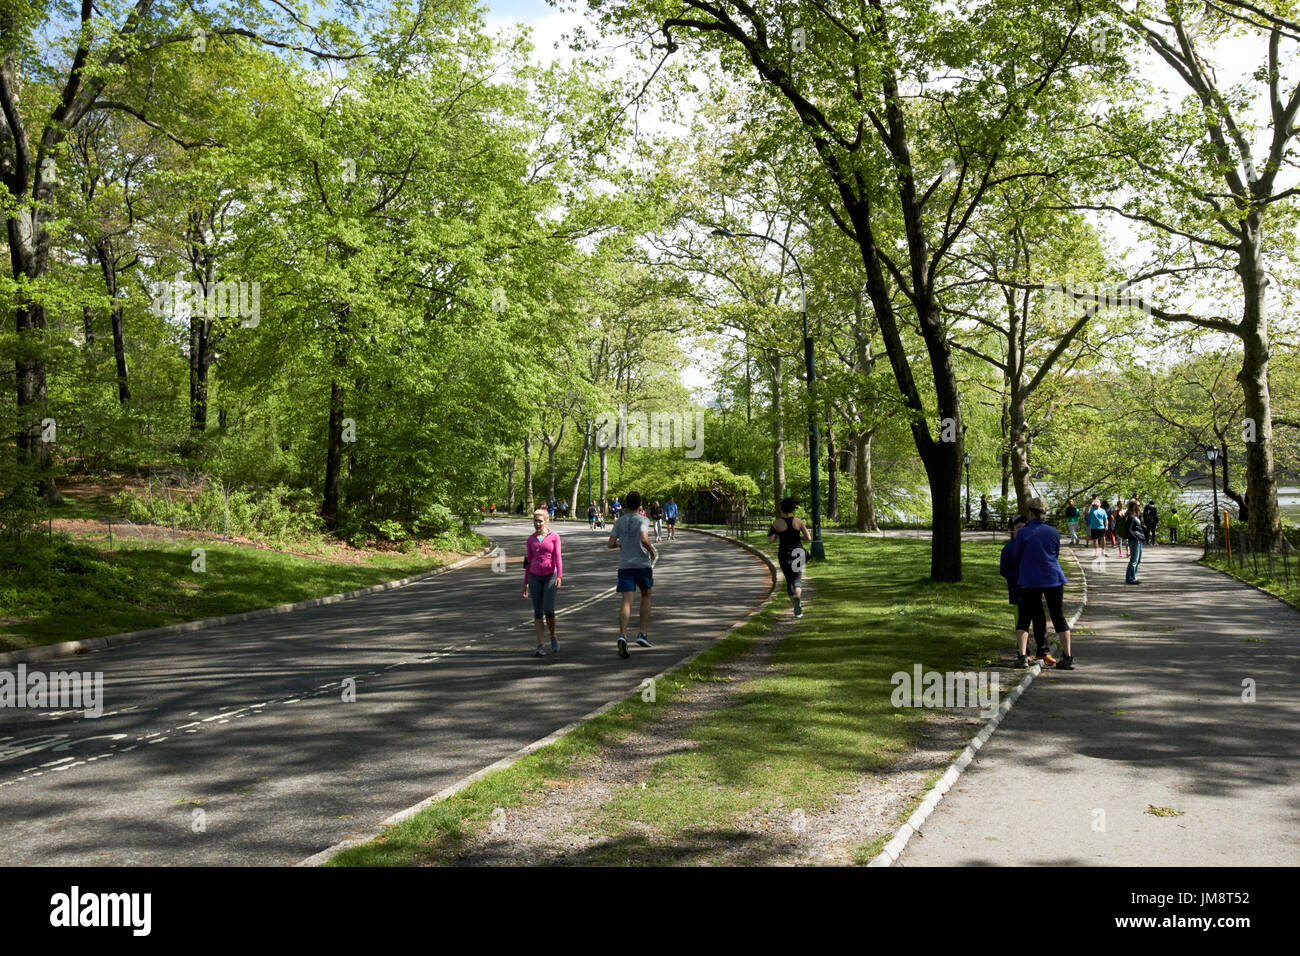 walking down to the lake central park New York City USA - Stock Image